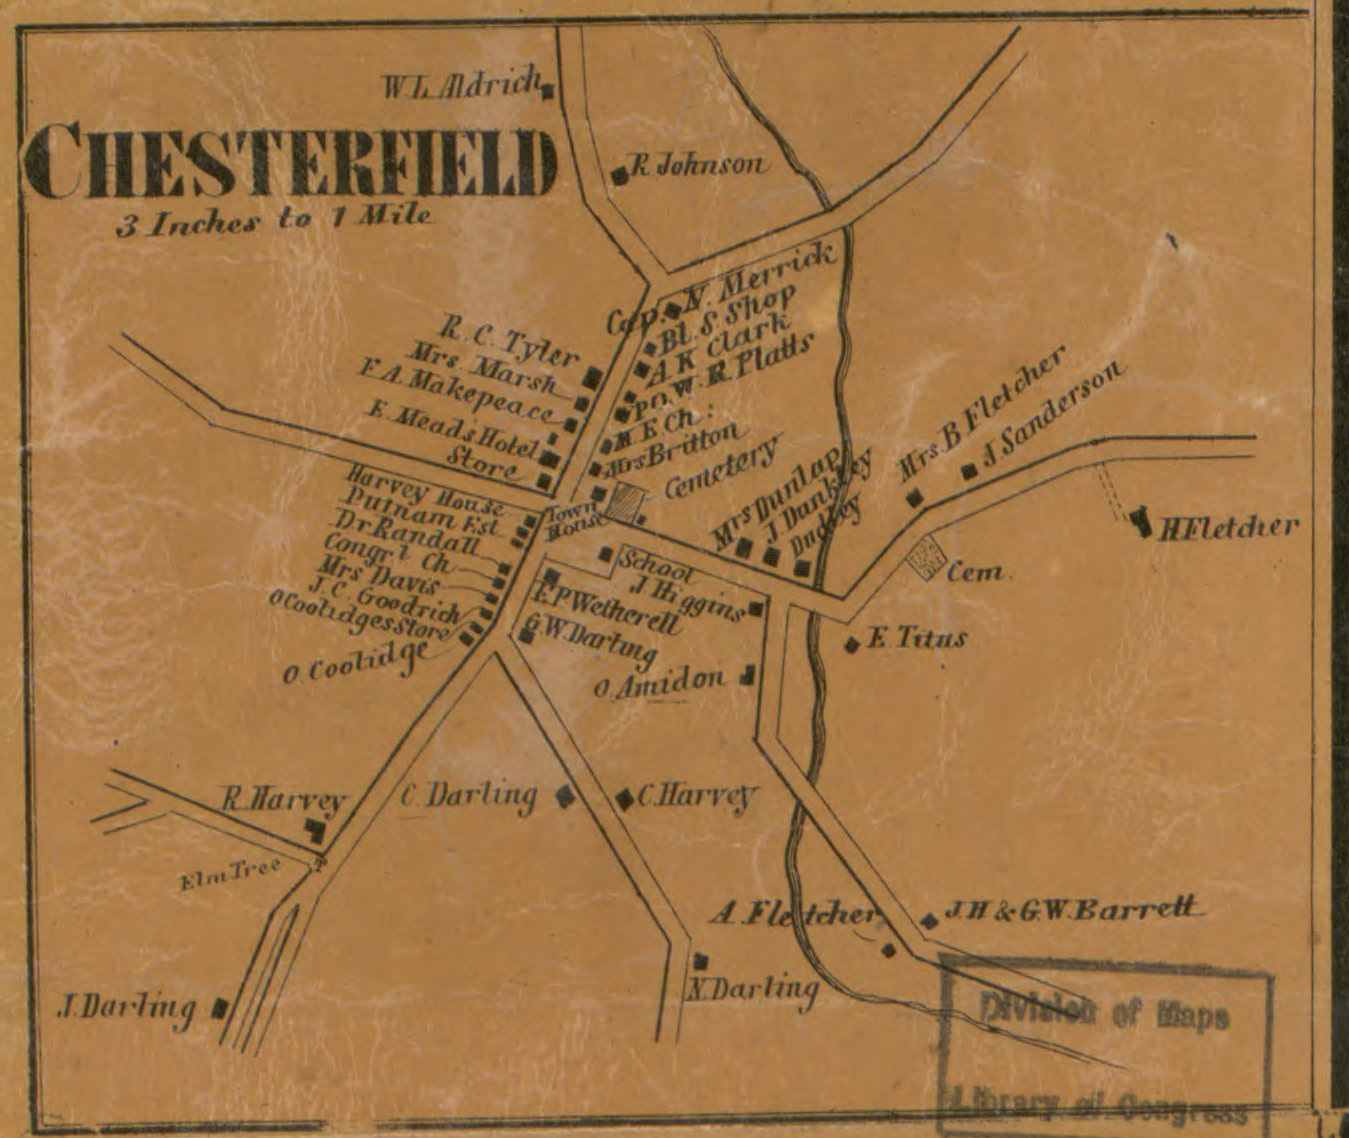 Chesterfield NH map in 1858